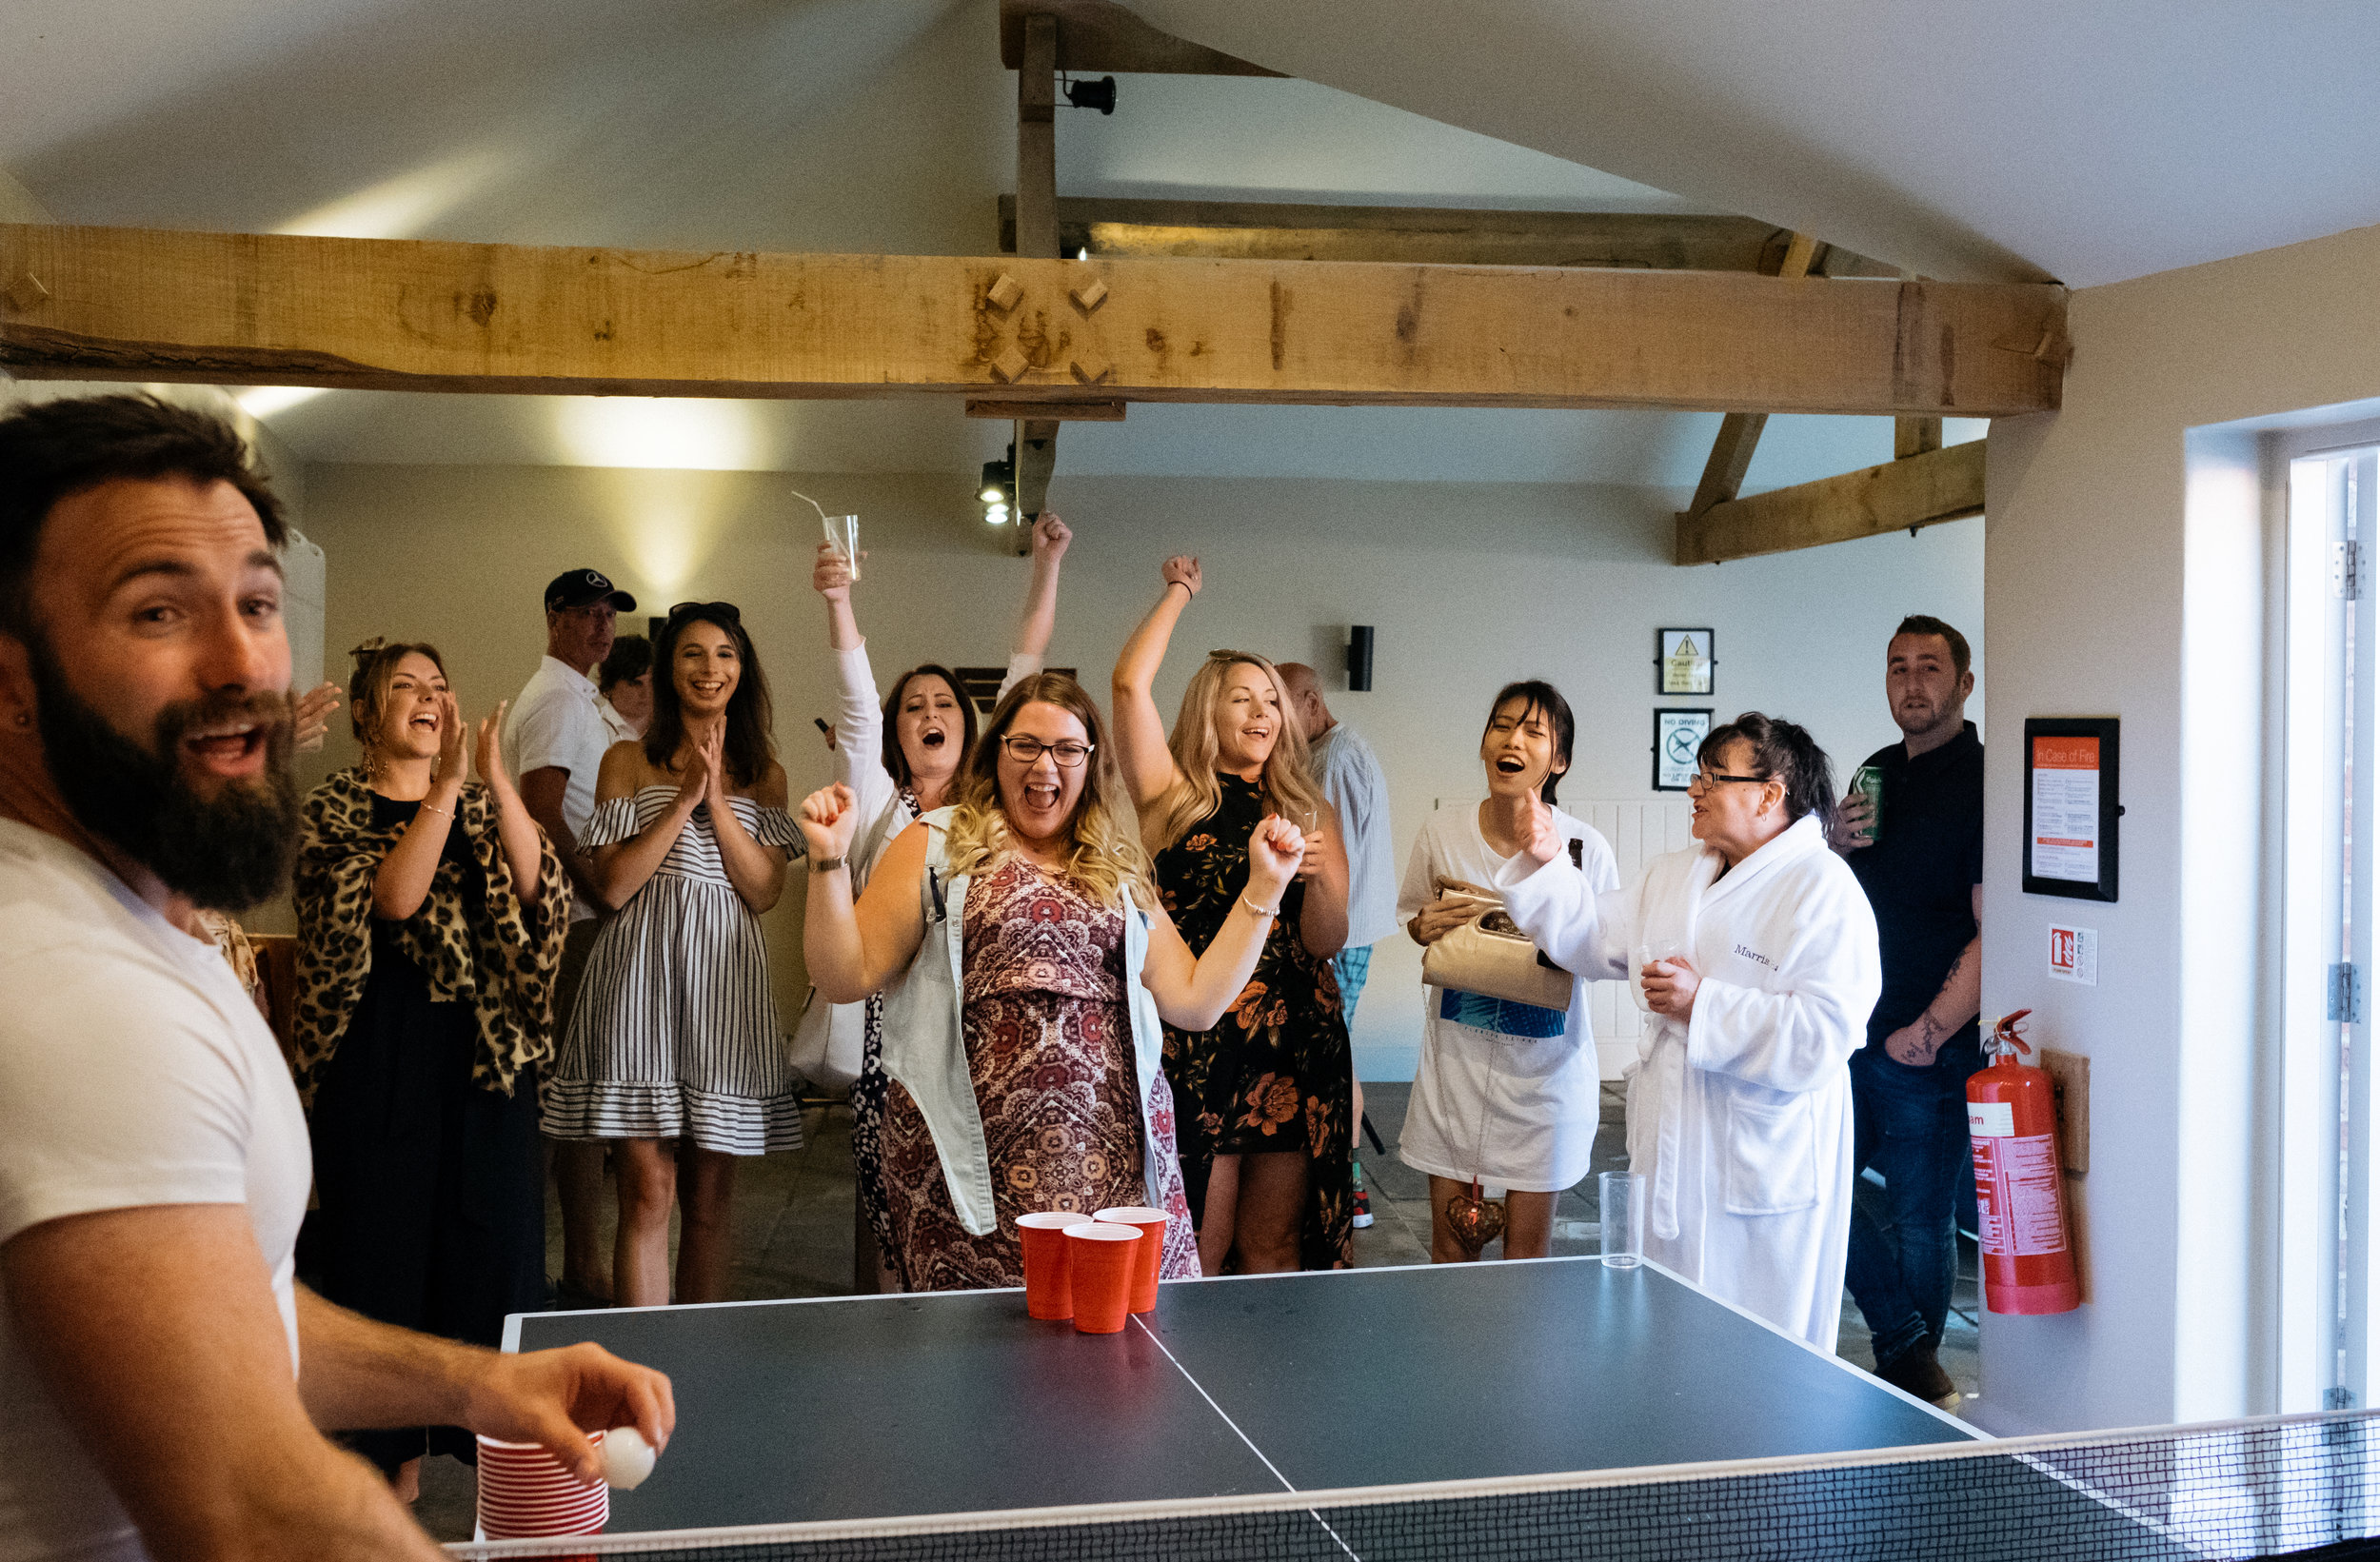 Team celebrate during wedding beer pong